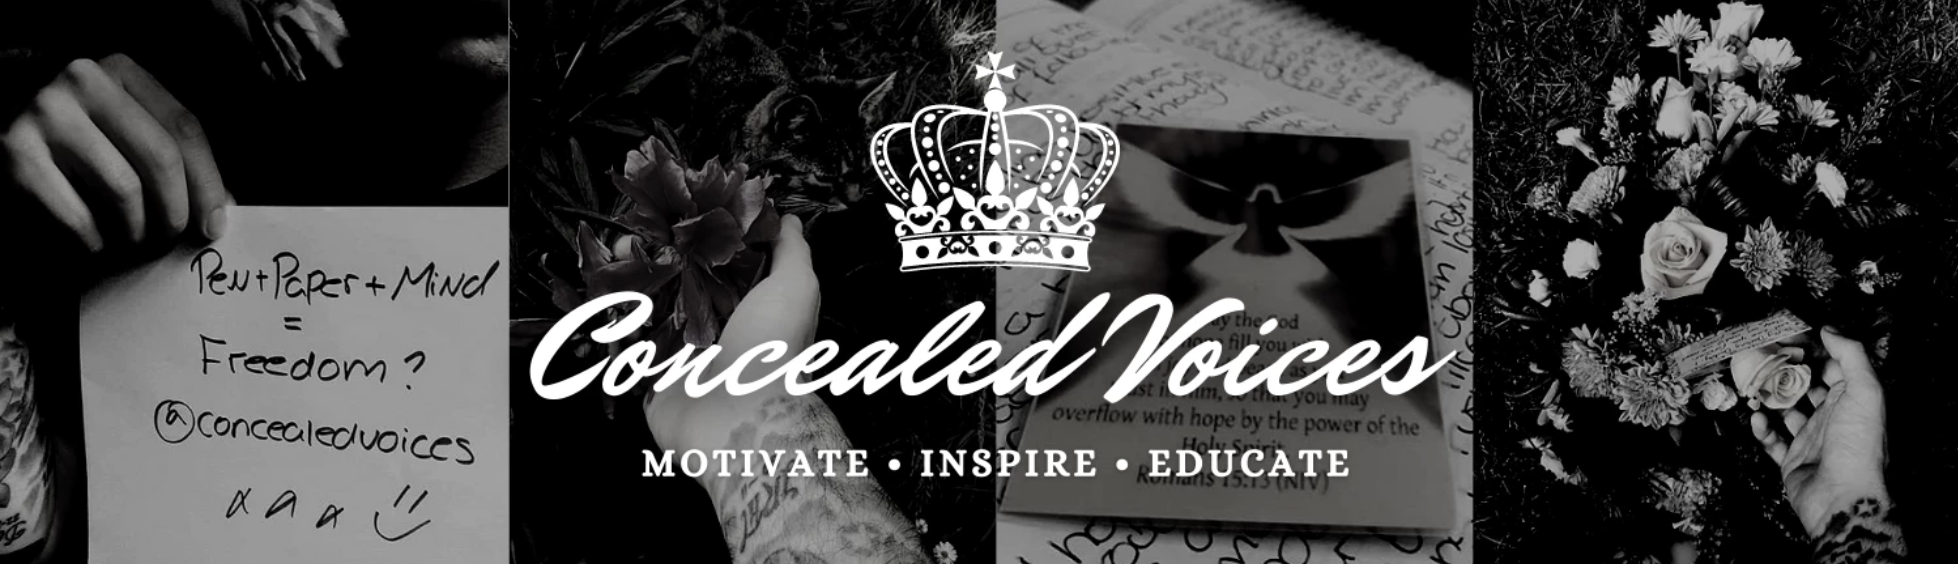 Blog header from concealedvoices.com